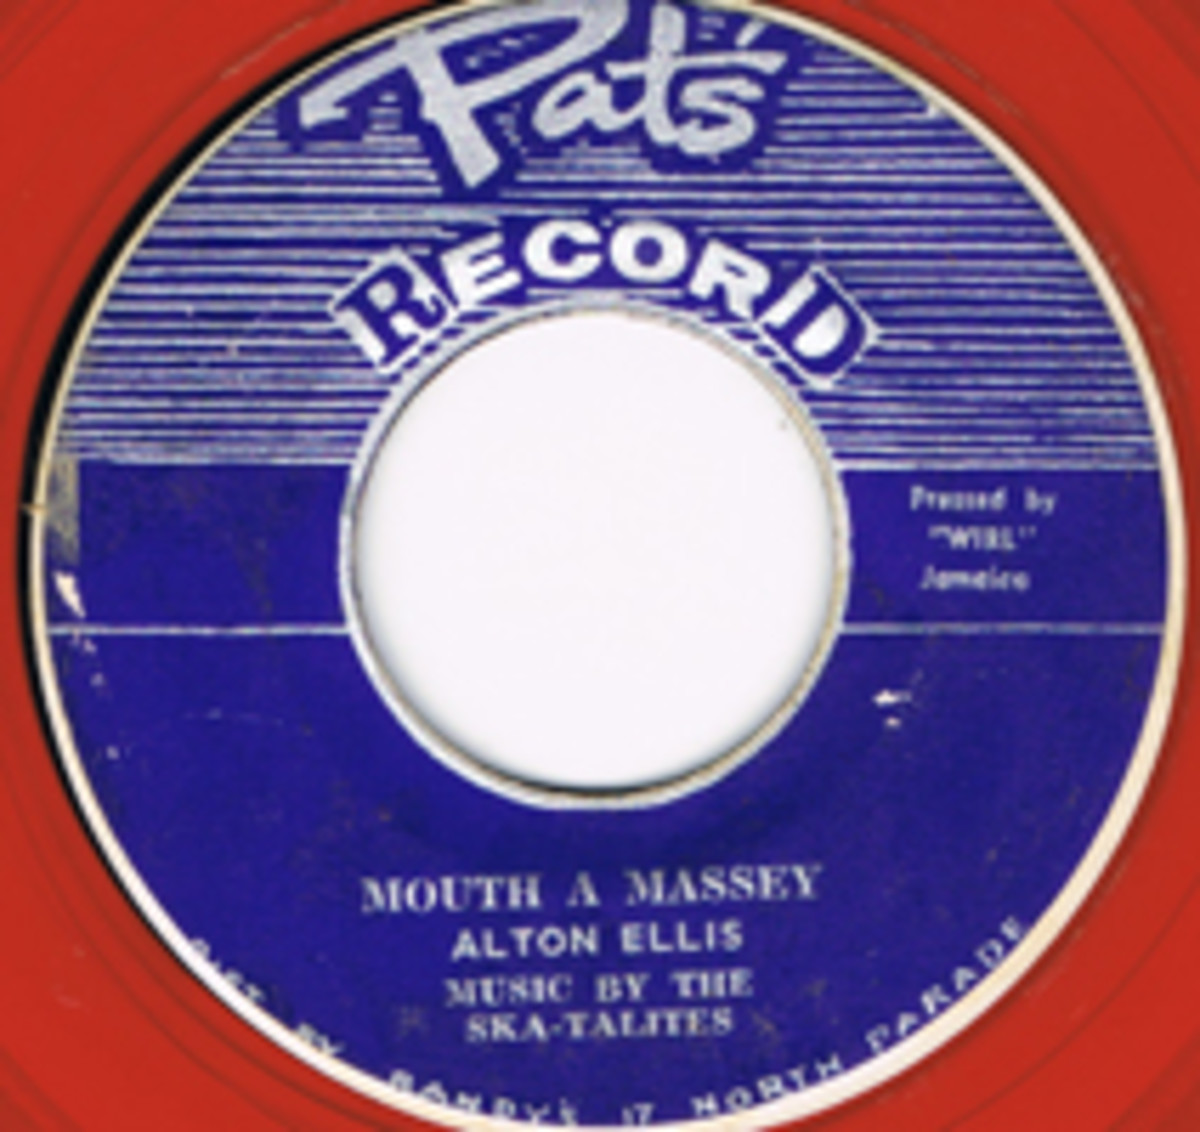 Alton Ellis and the Ska-Talites Mouth A Massey